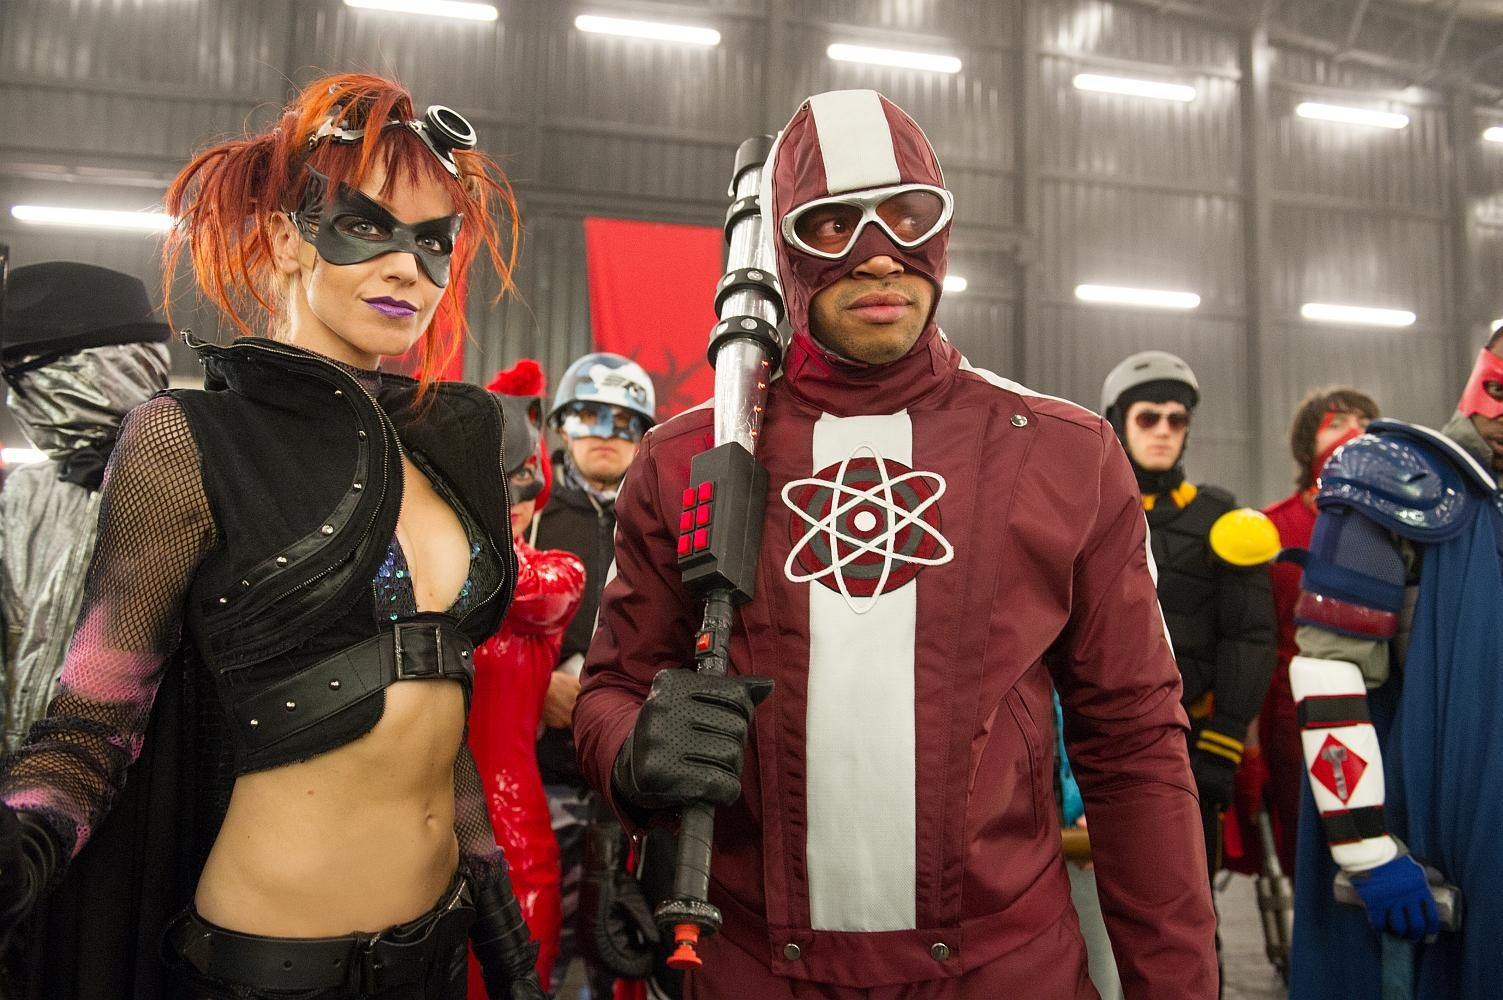 Kick-ass 2. Actors who starred in the new adventures of Ubivashka and her friends 1